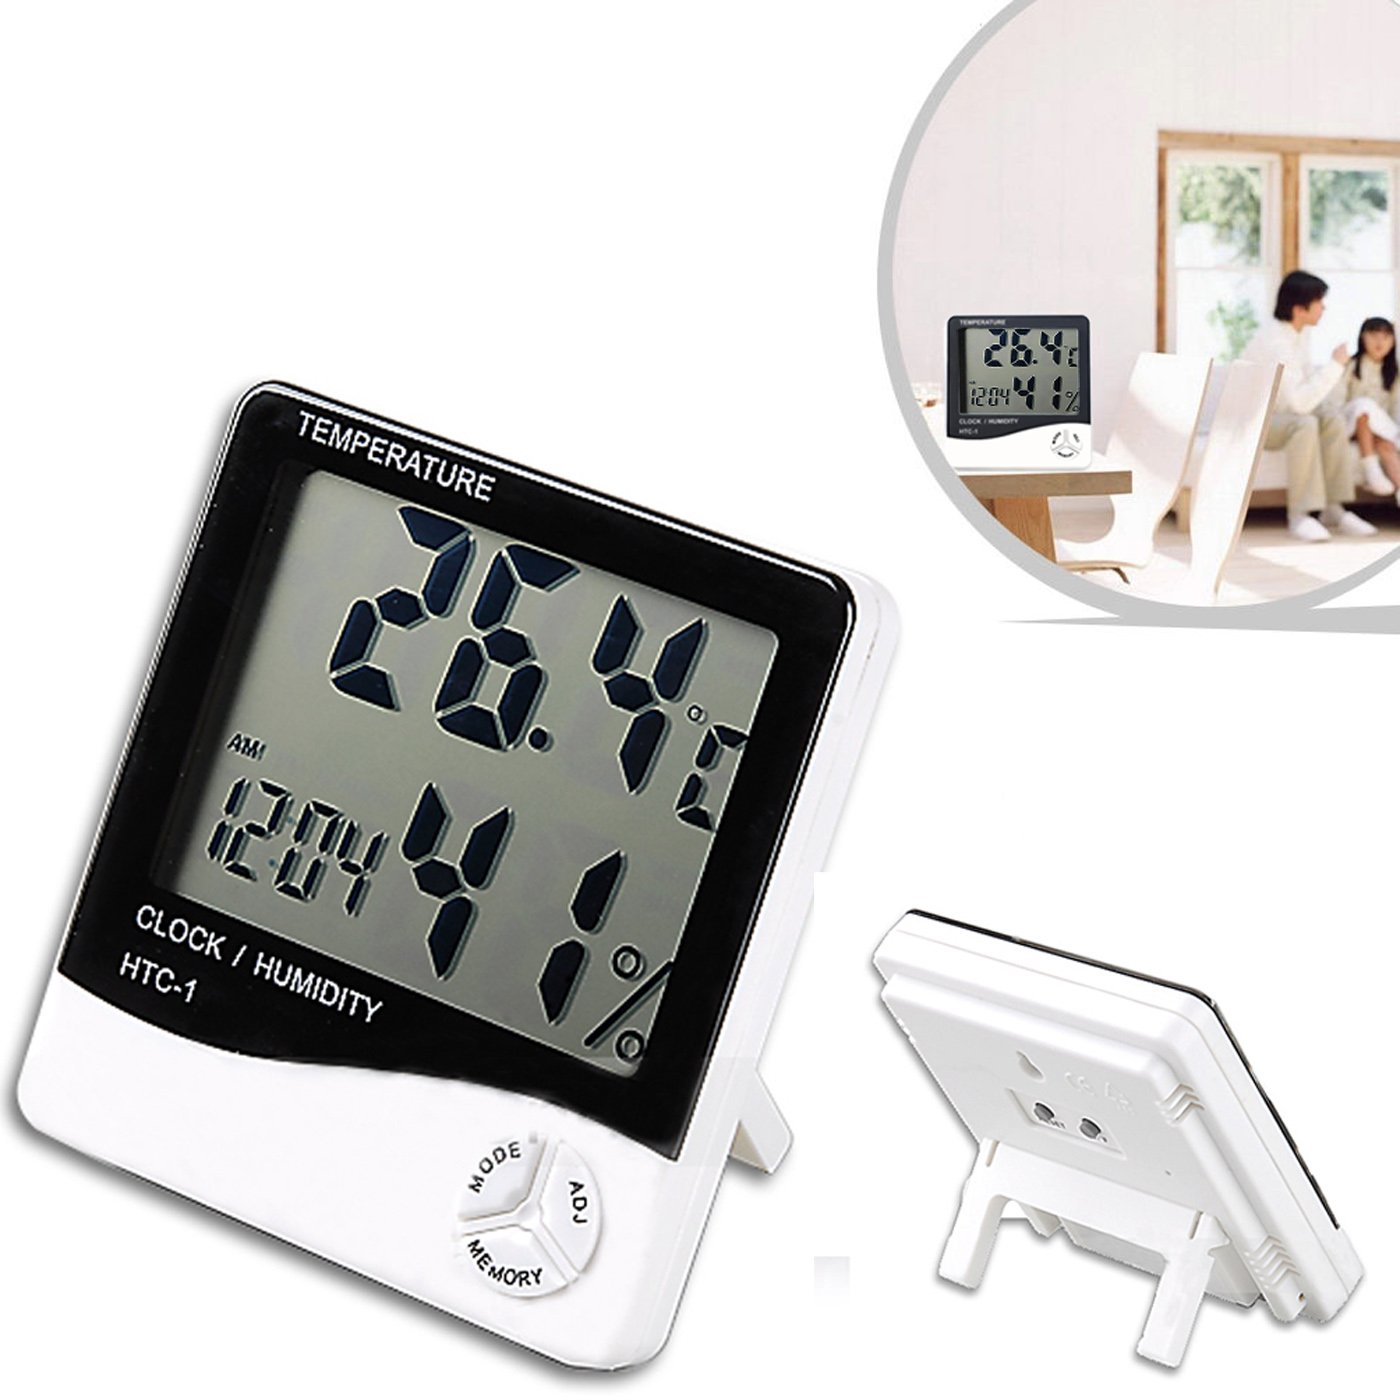 HDE Indoor Digital Humidity Meter Hygrometer Thermometer with Large LCD Display Temperature Alarm Clock AX-AY-ABHI-29919